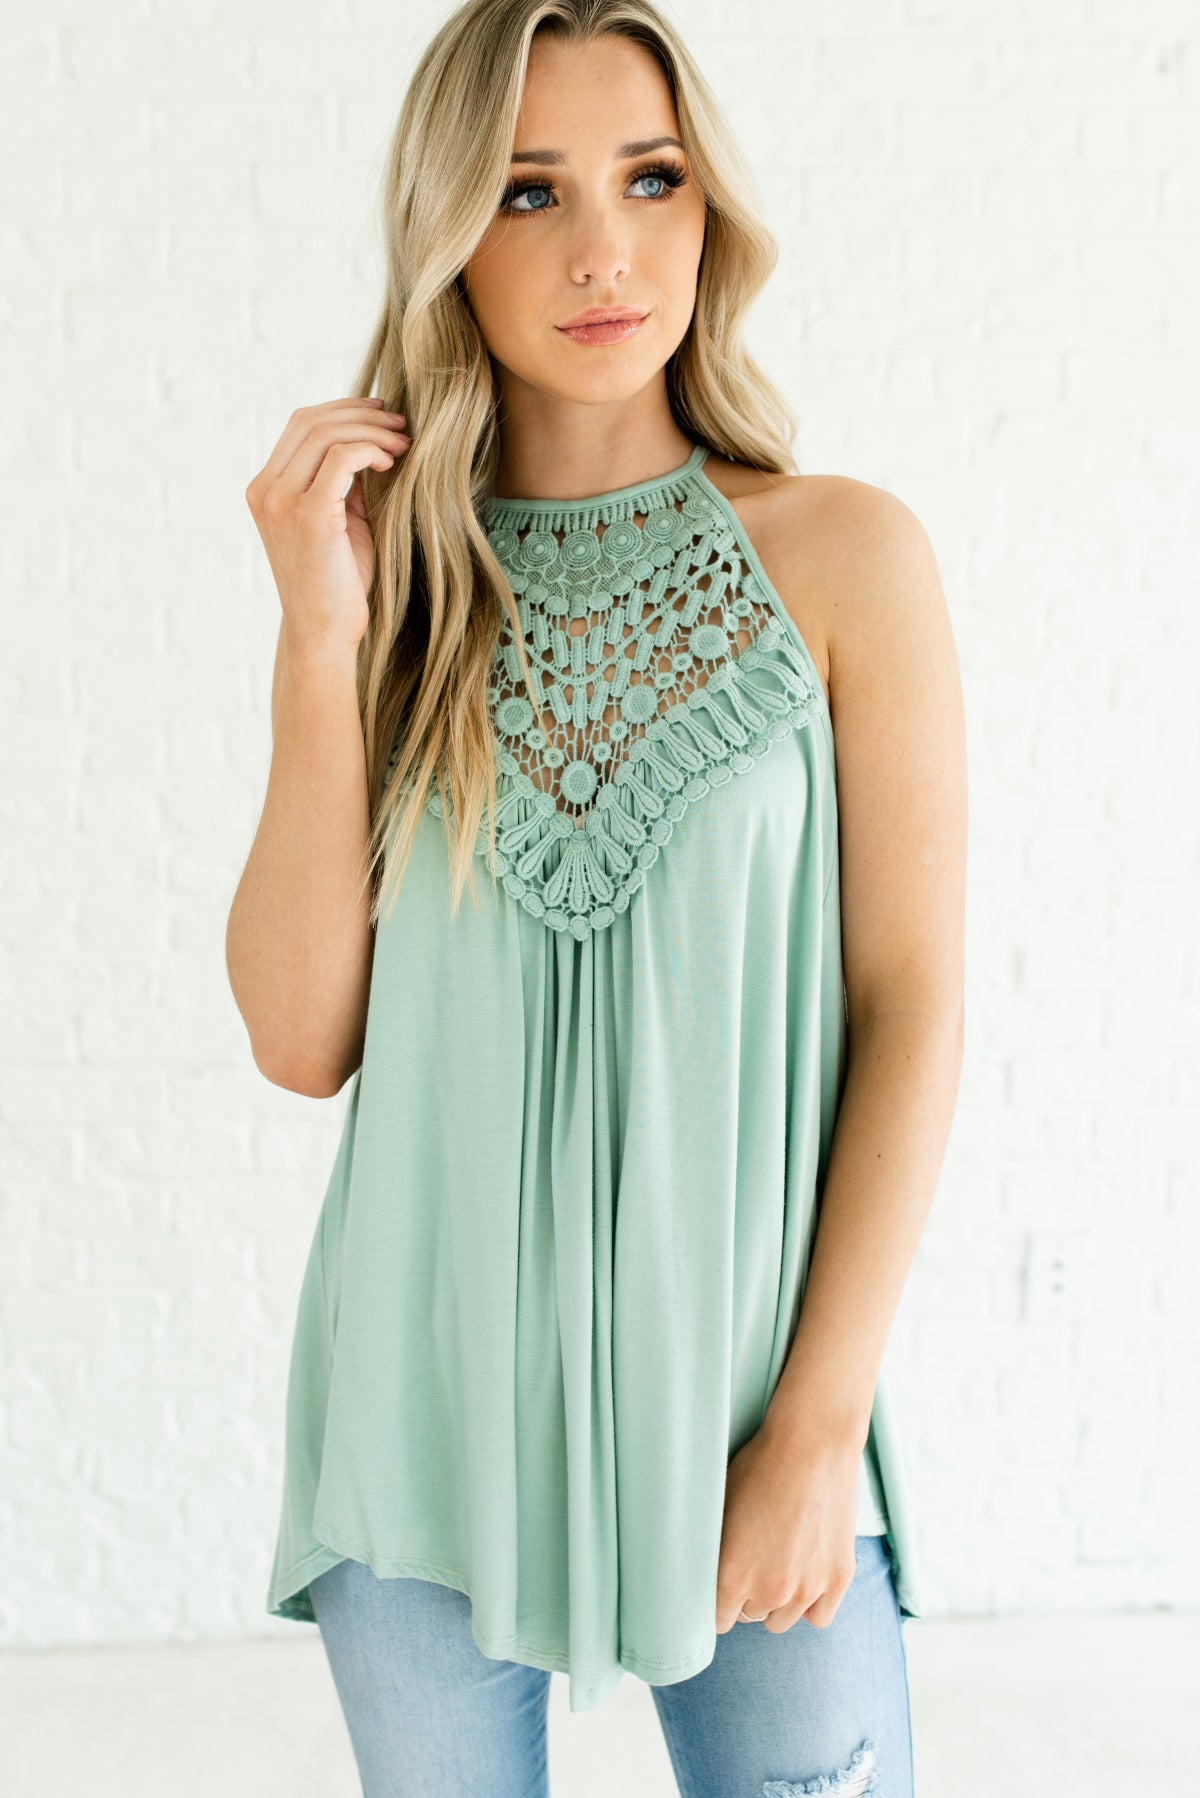 Sage Green Crochet Lace Bodice Boutique Tank Tops for Women